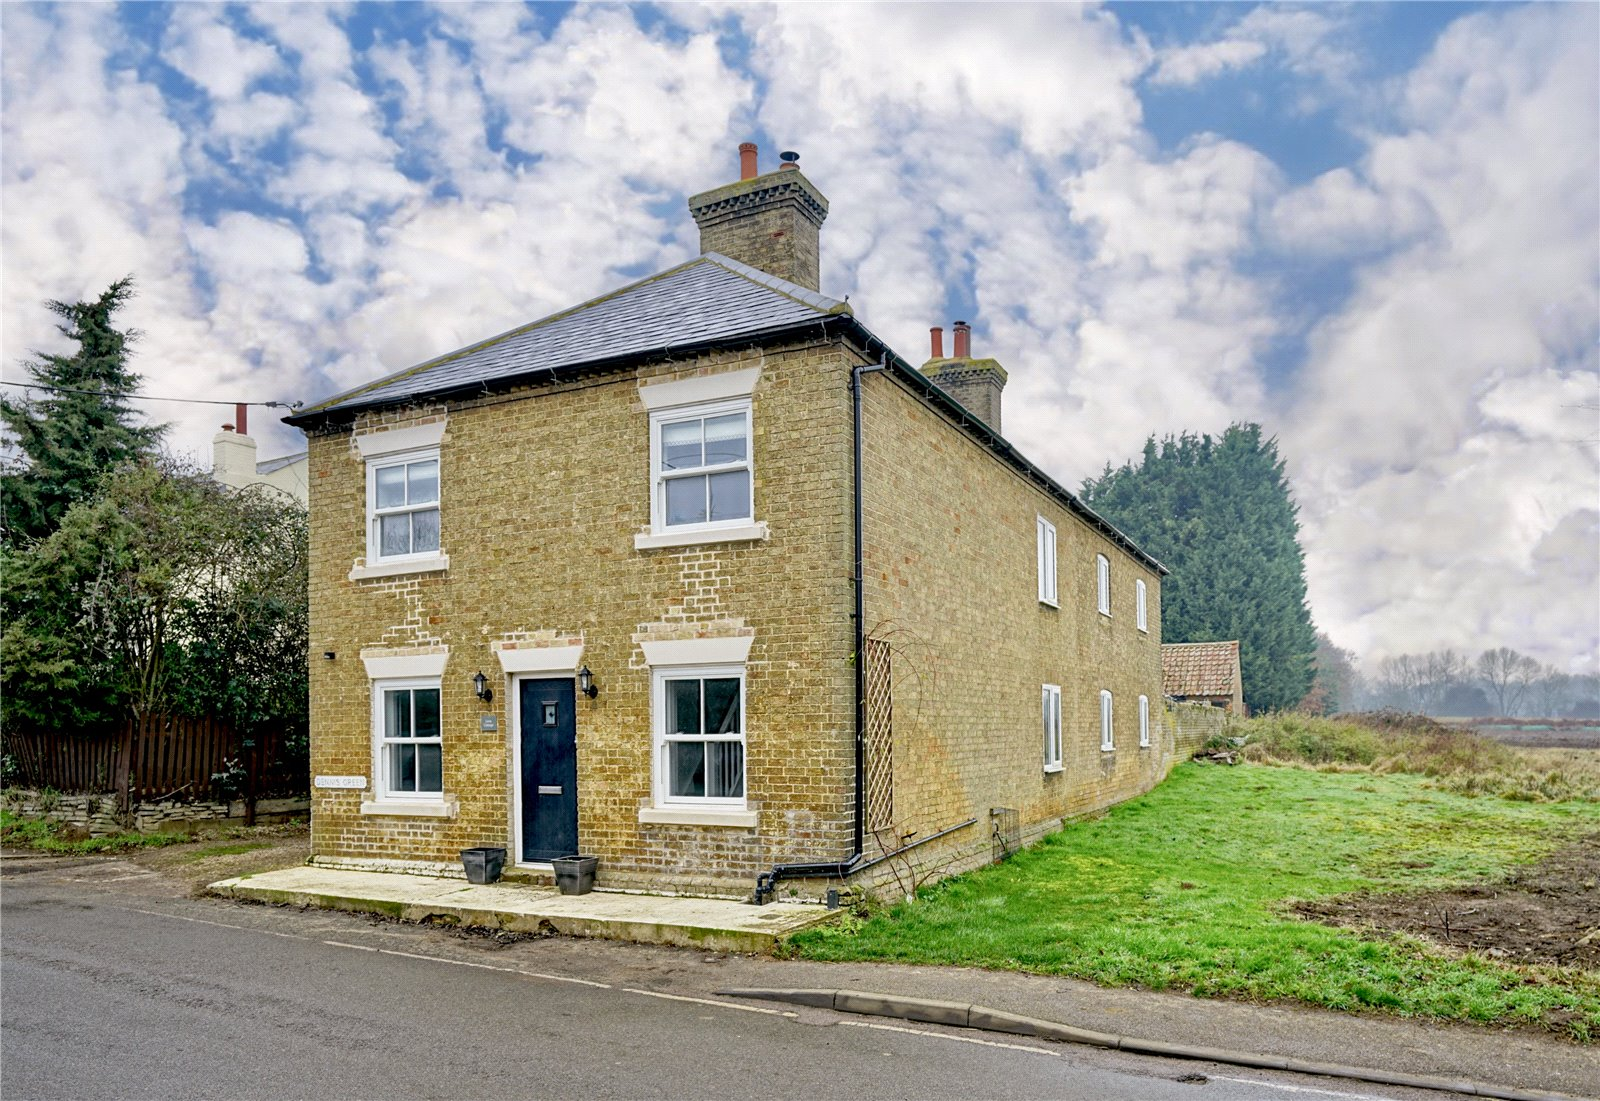 2 bed house for sale in Gamlingay, SG19